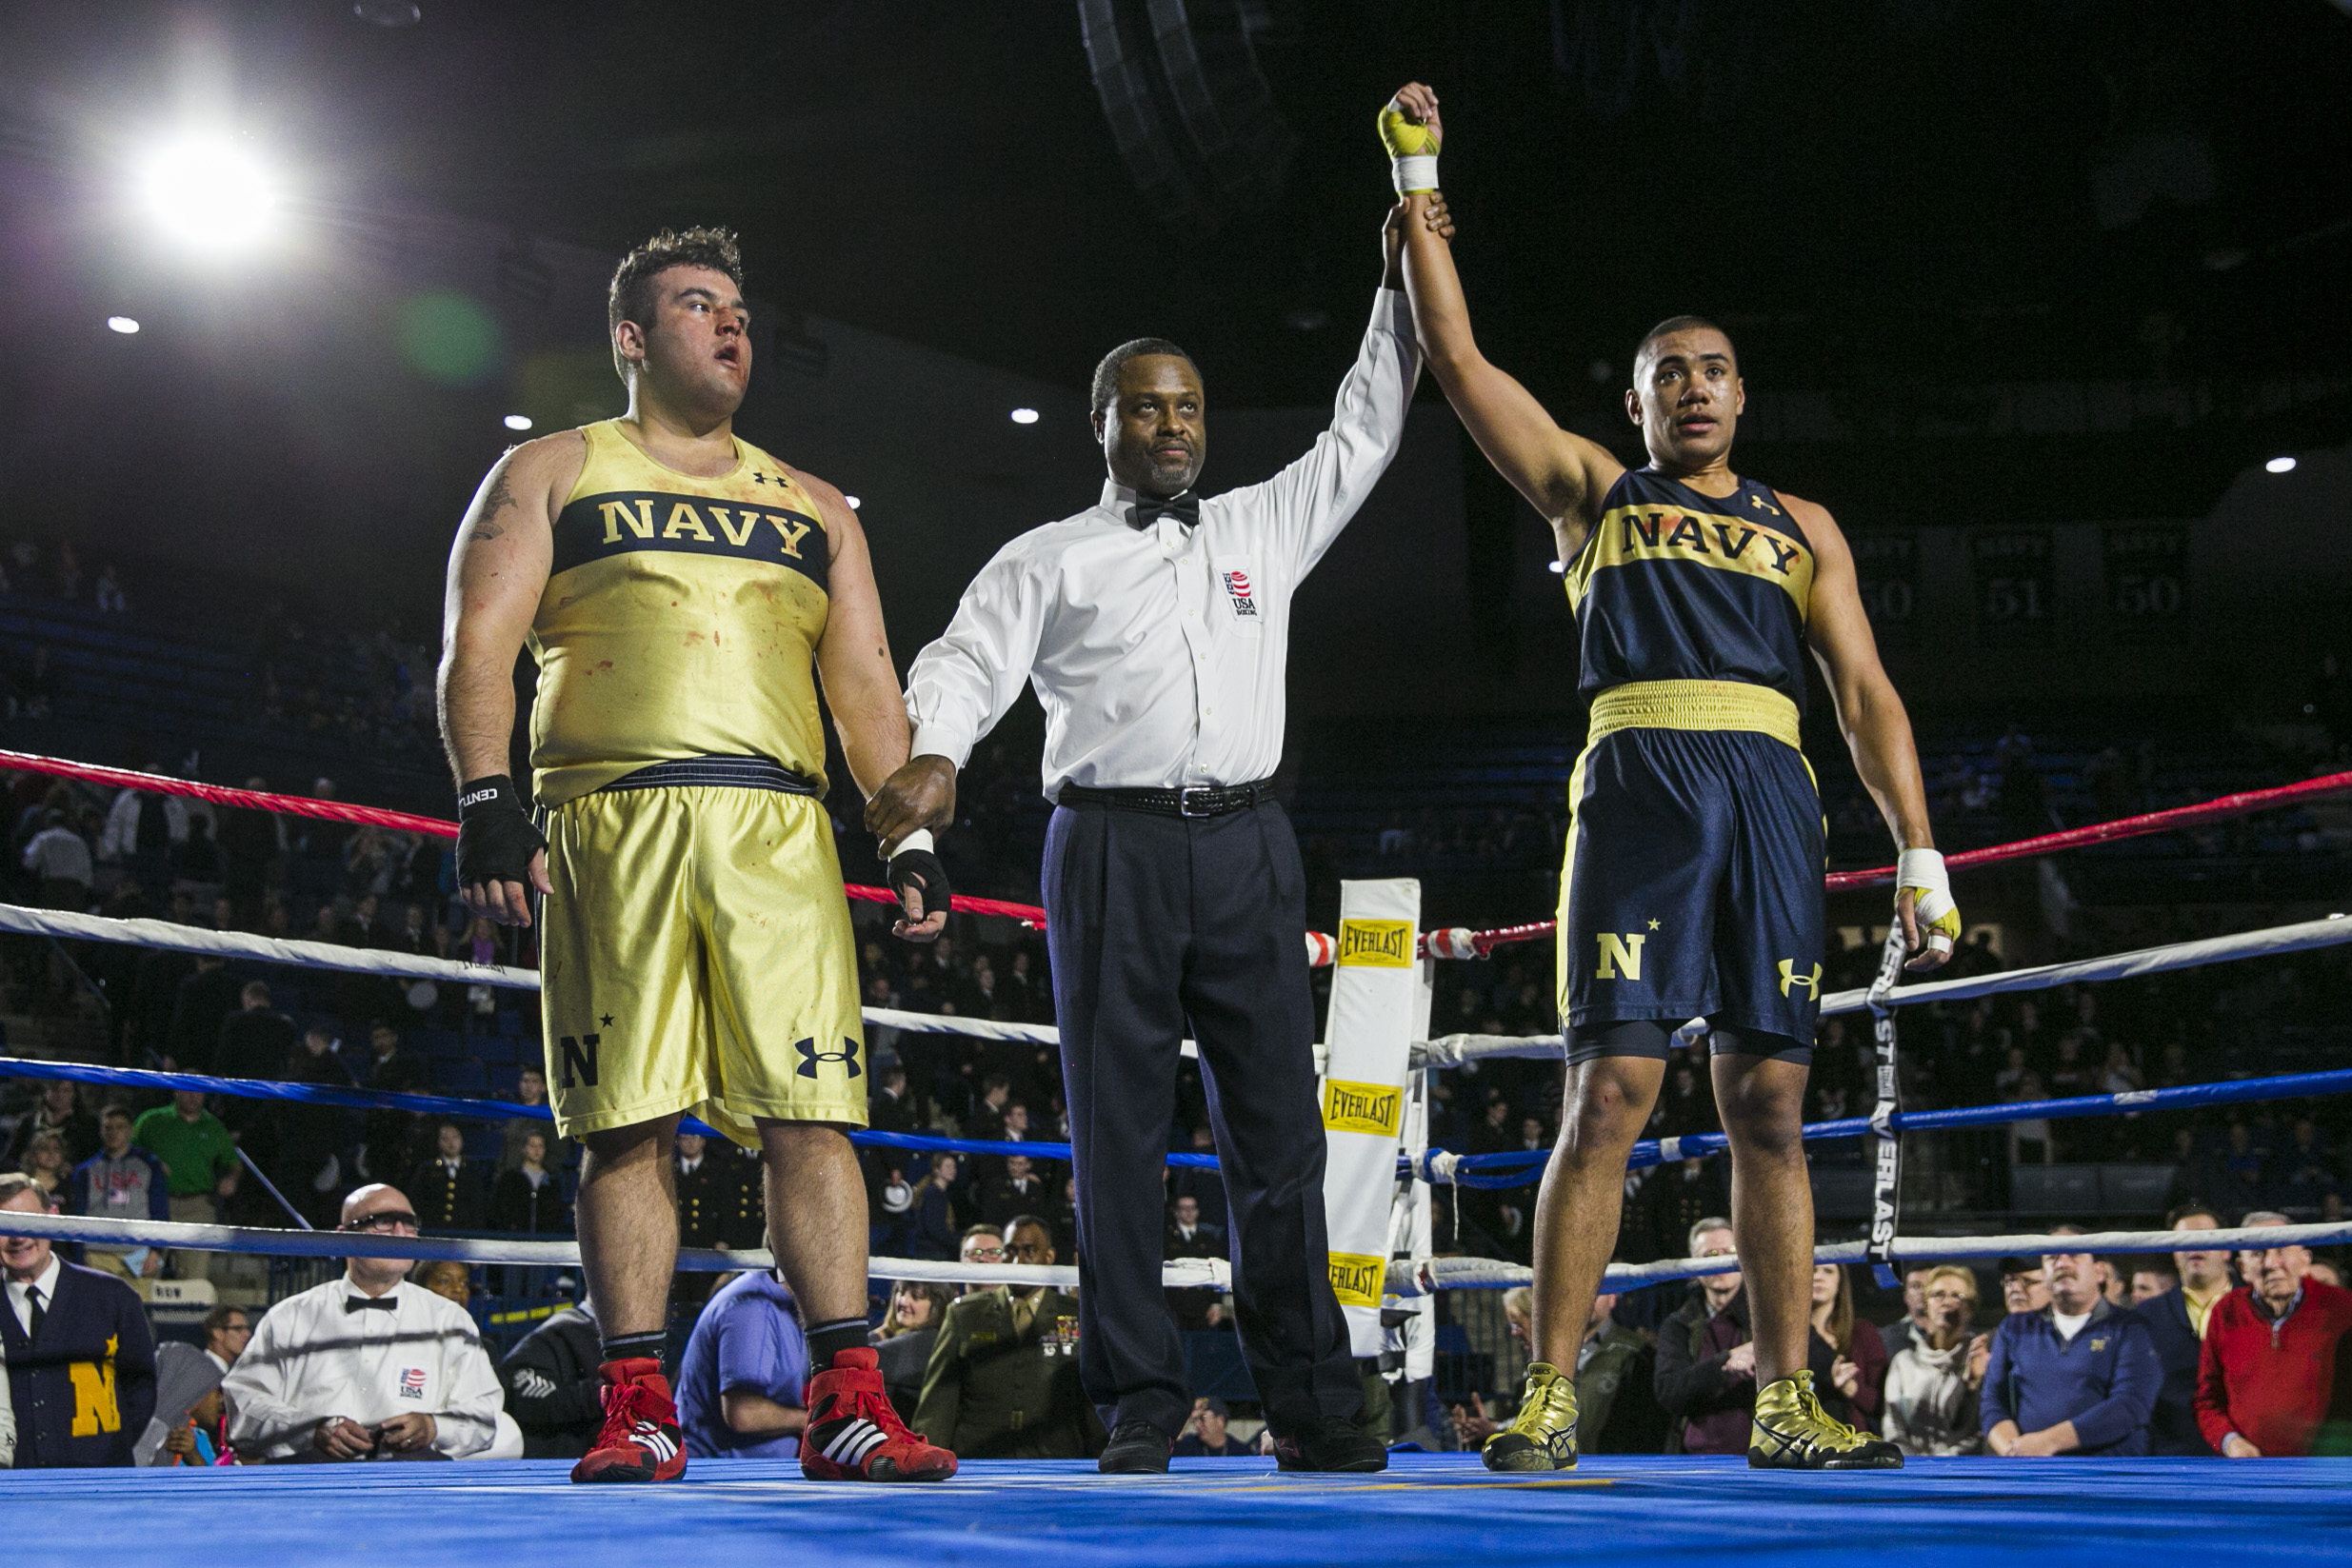 Charles Patterson, right, from Honolulu, HI defeats Joey Resendez, left, from El Paso, TX, in the Heavyweight fight during the United States Naval Academy's 77th Brigade Boxing Championships held on Feb. 23, 2018. (Alan Lessig/Staff)